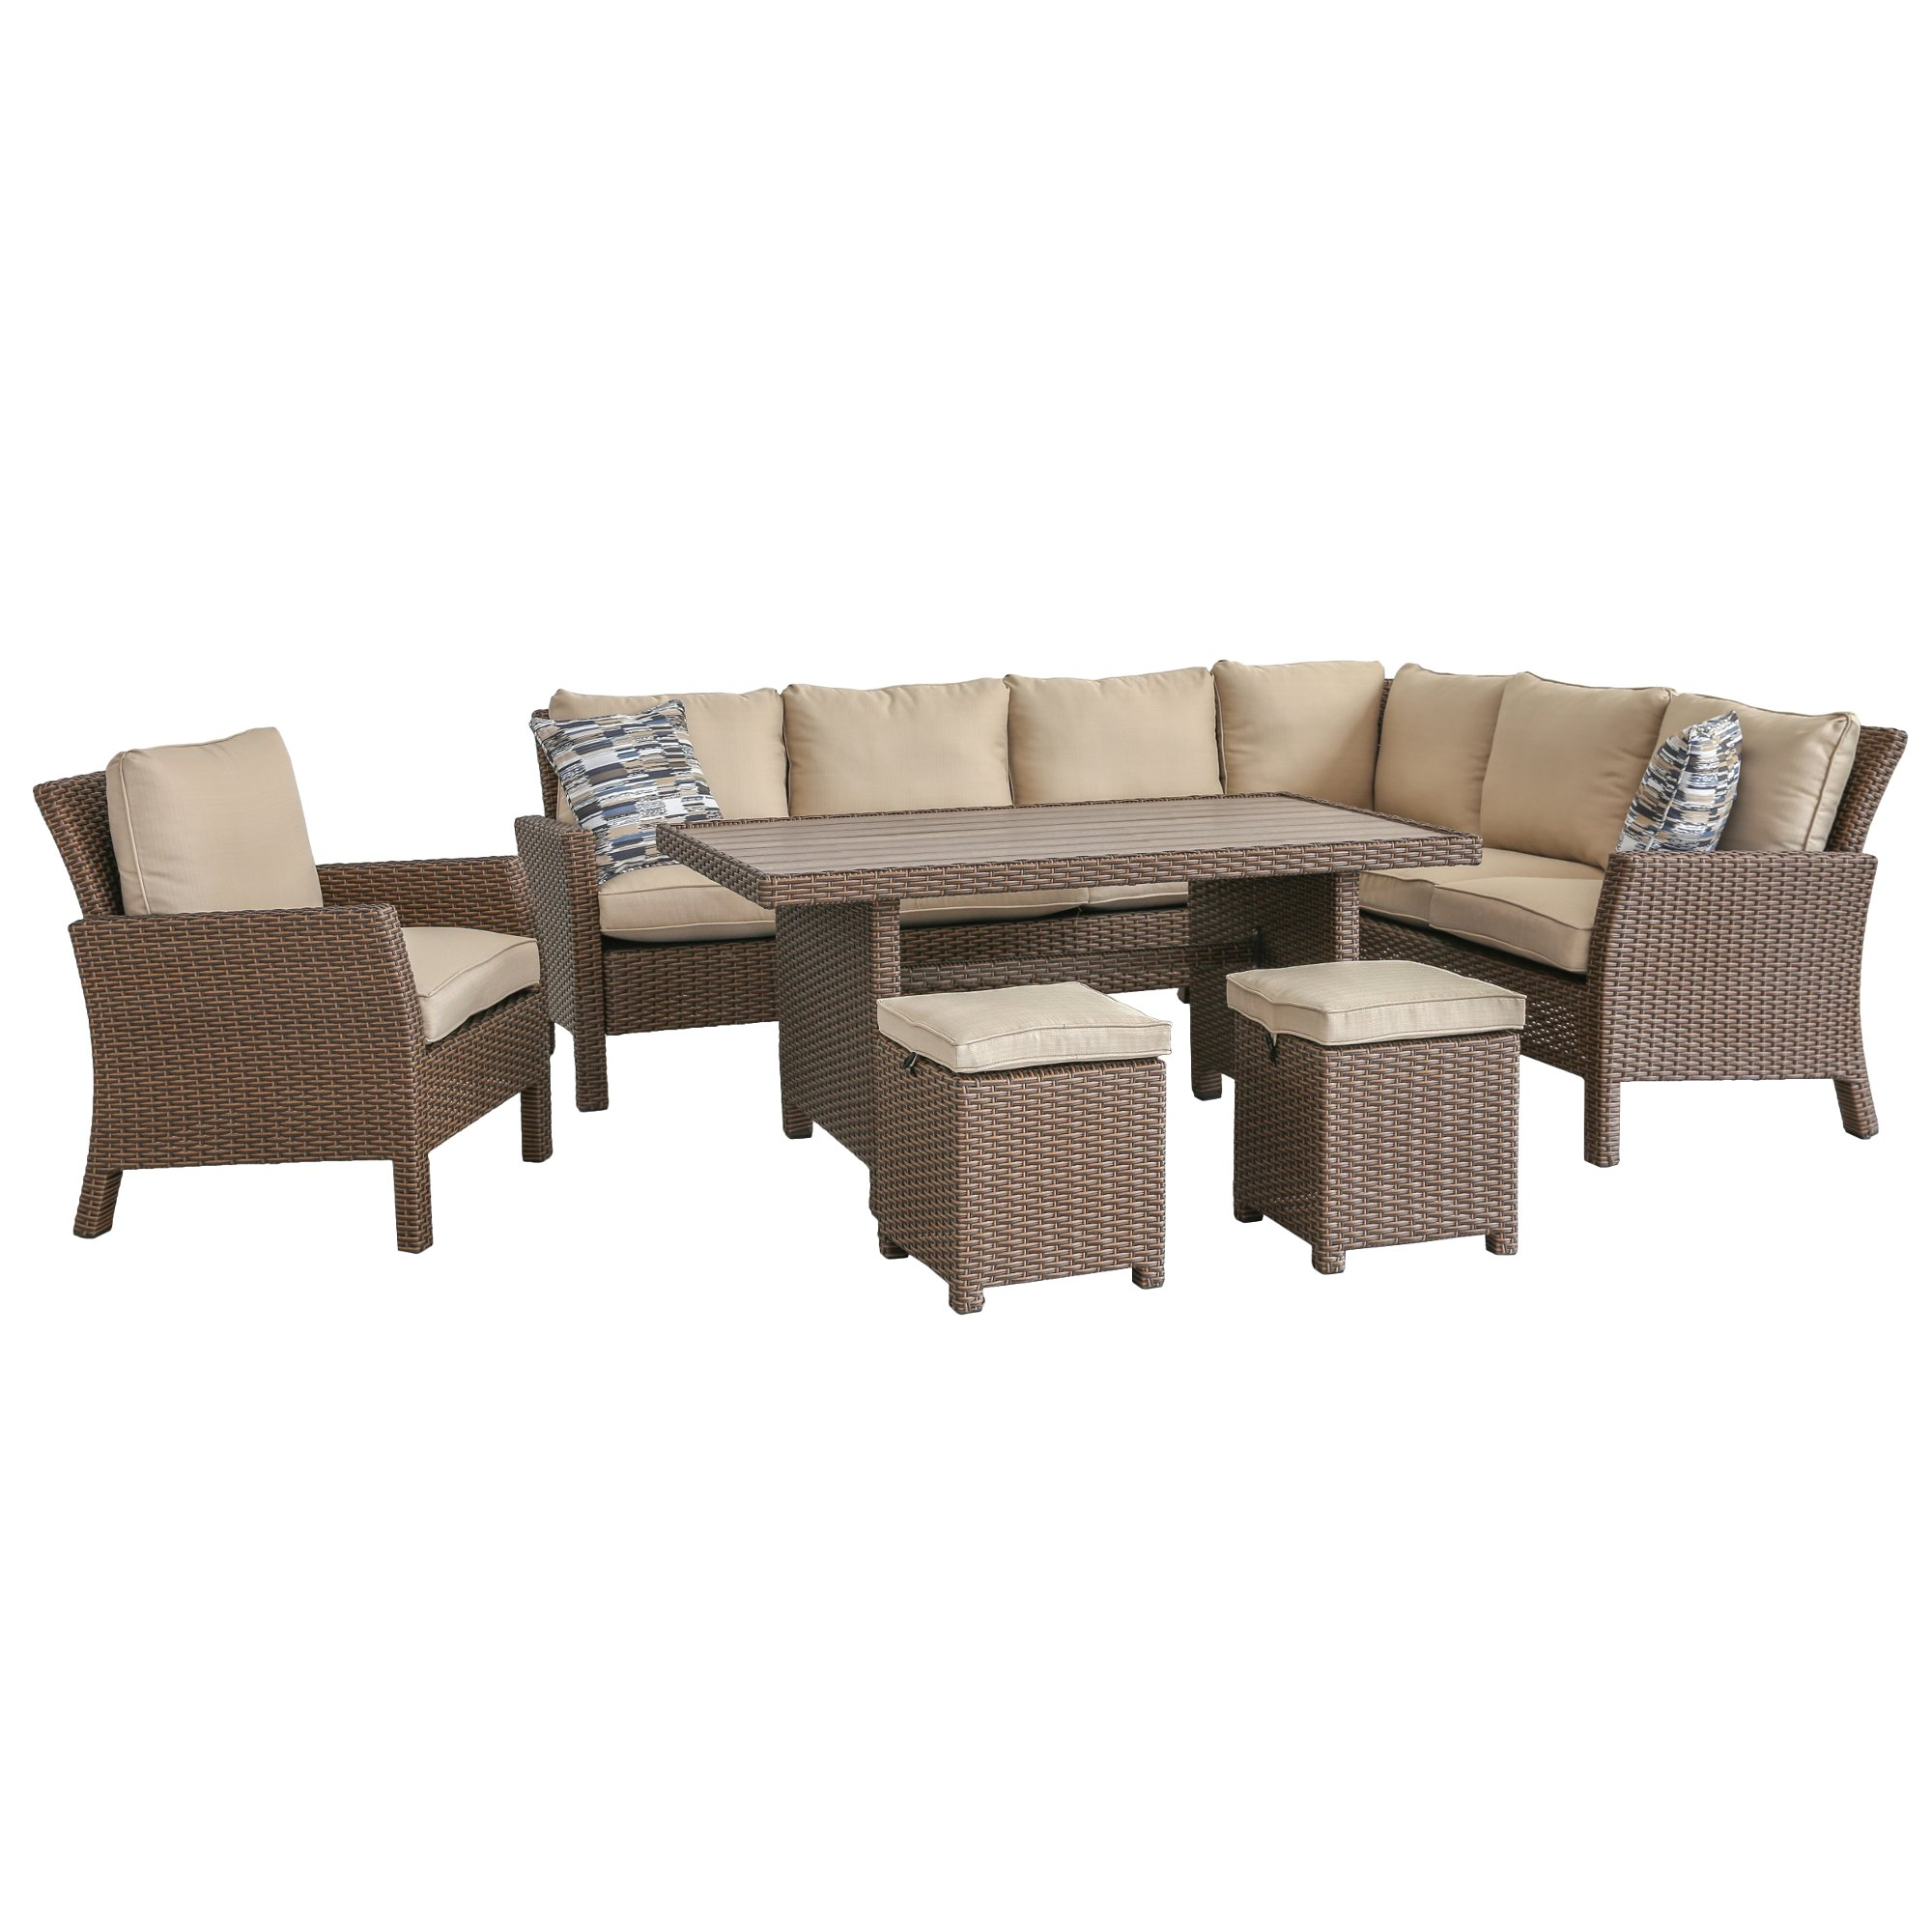 Owen 5 Piece Rattan Sofa Set With Cushions 6 Piece Outdoor Patio Furniture Set Arcadia